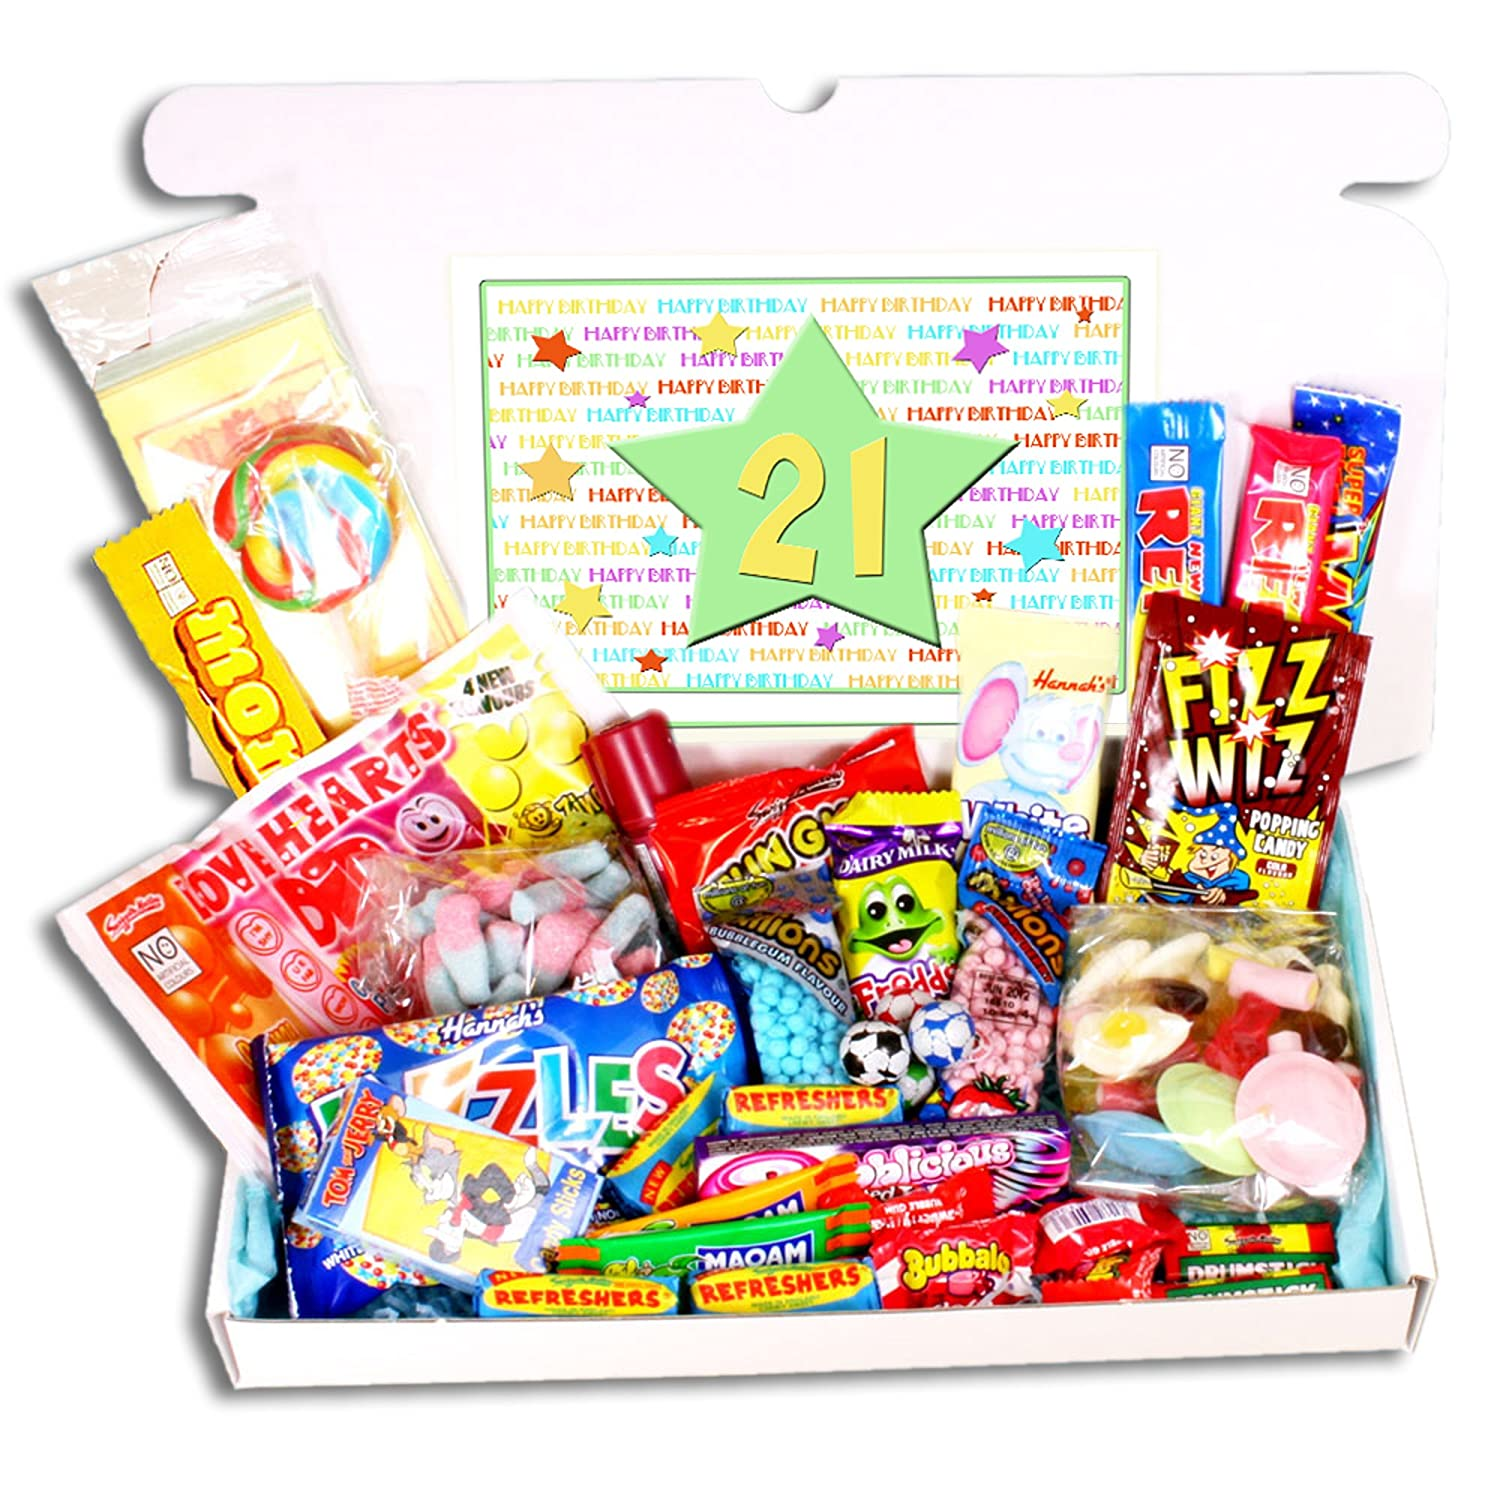 21st Birthday Sweets Gift Box Amazoncouk Grocery